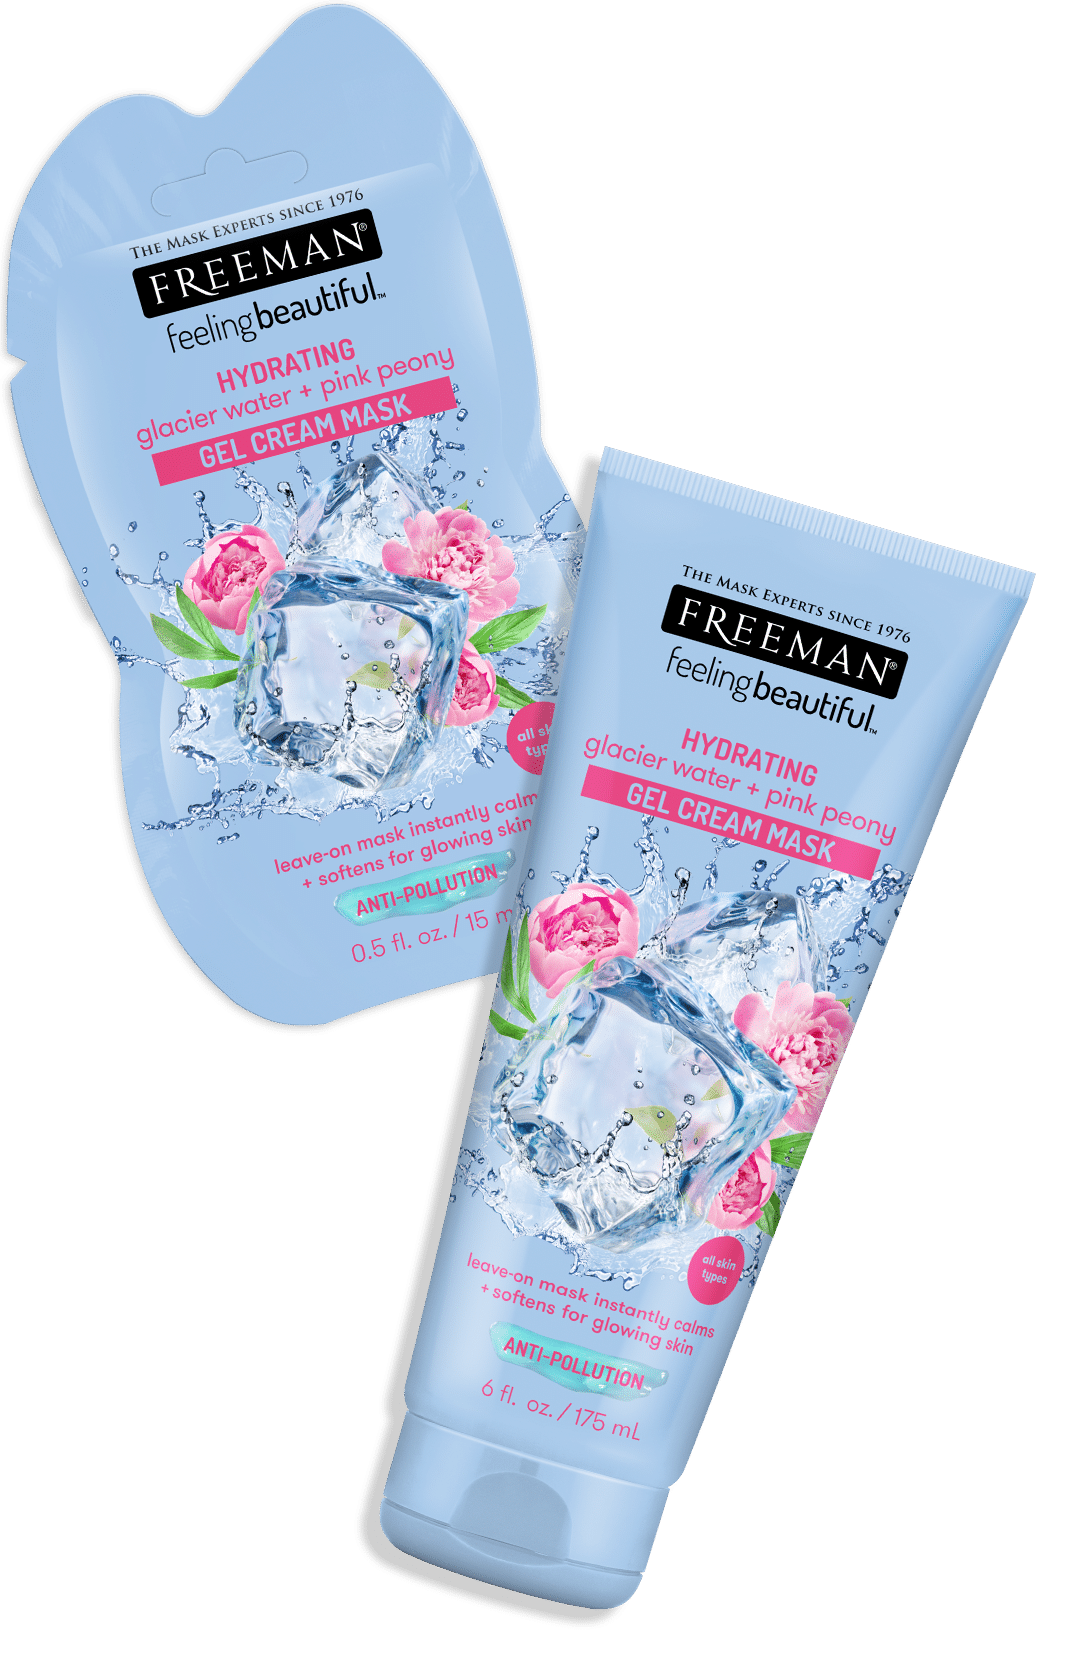 HYDRATING glacier water + pink peony GEL CREAM MASK